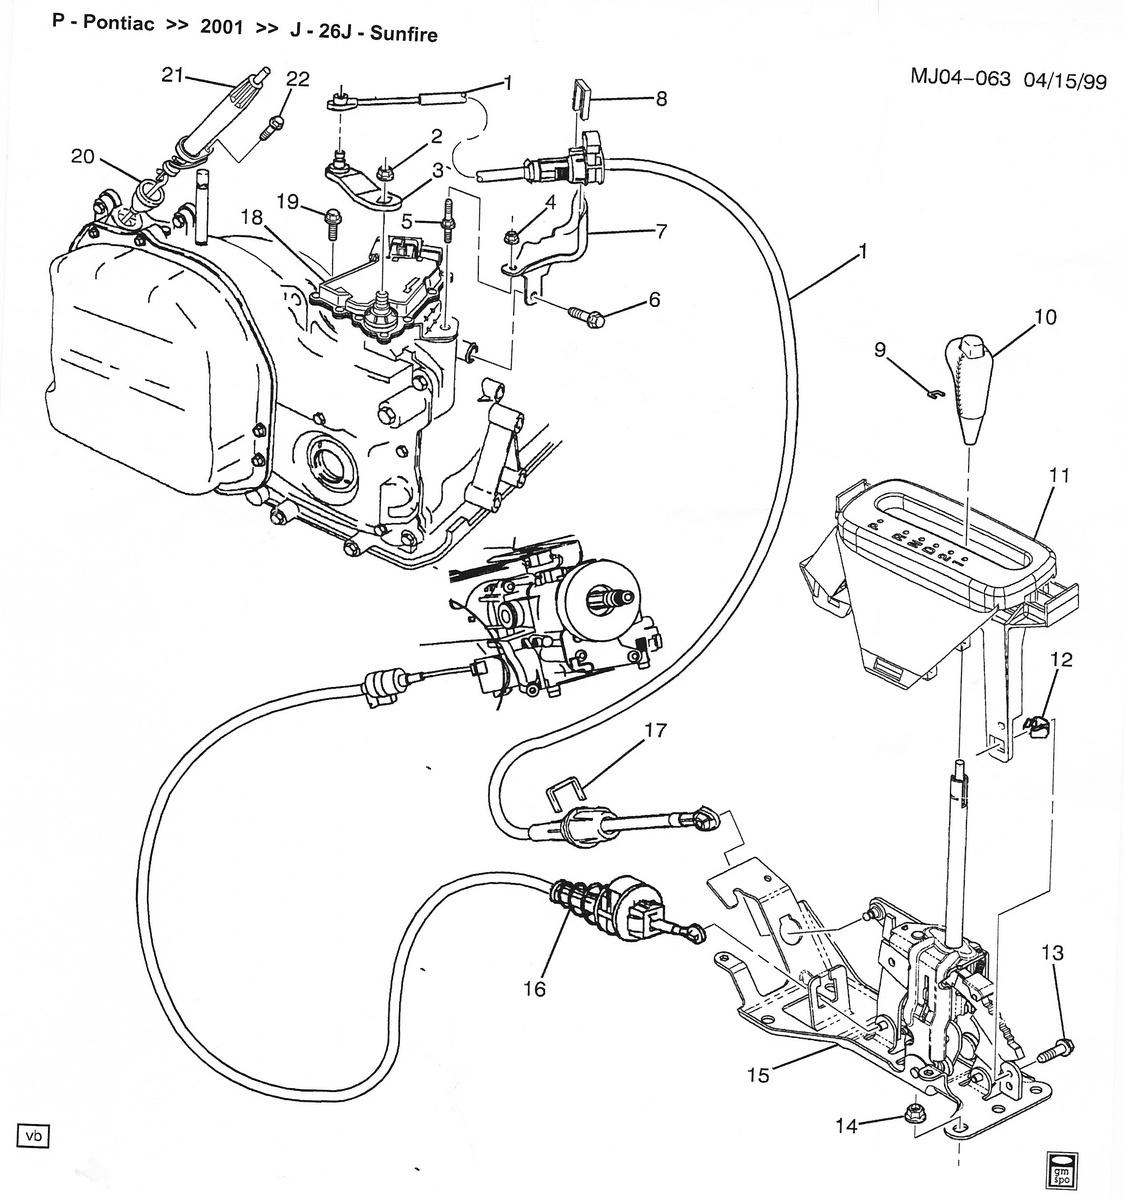 Vapor Canister Purge Valve Location on 2008 dodge avenger starter diagram